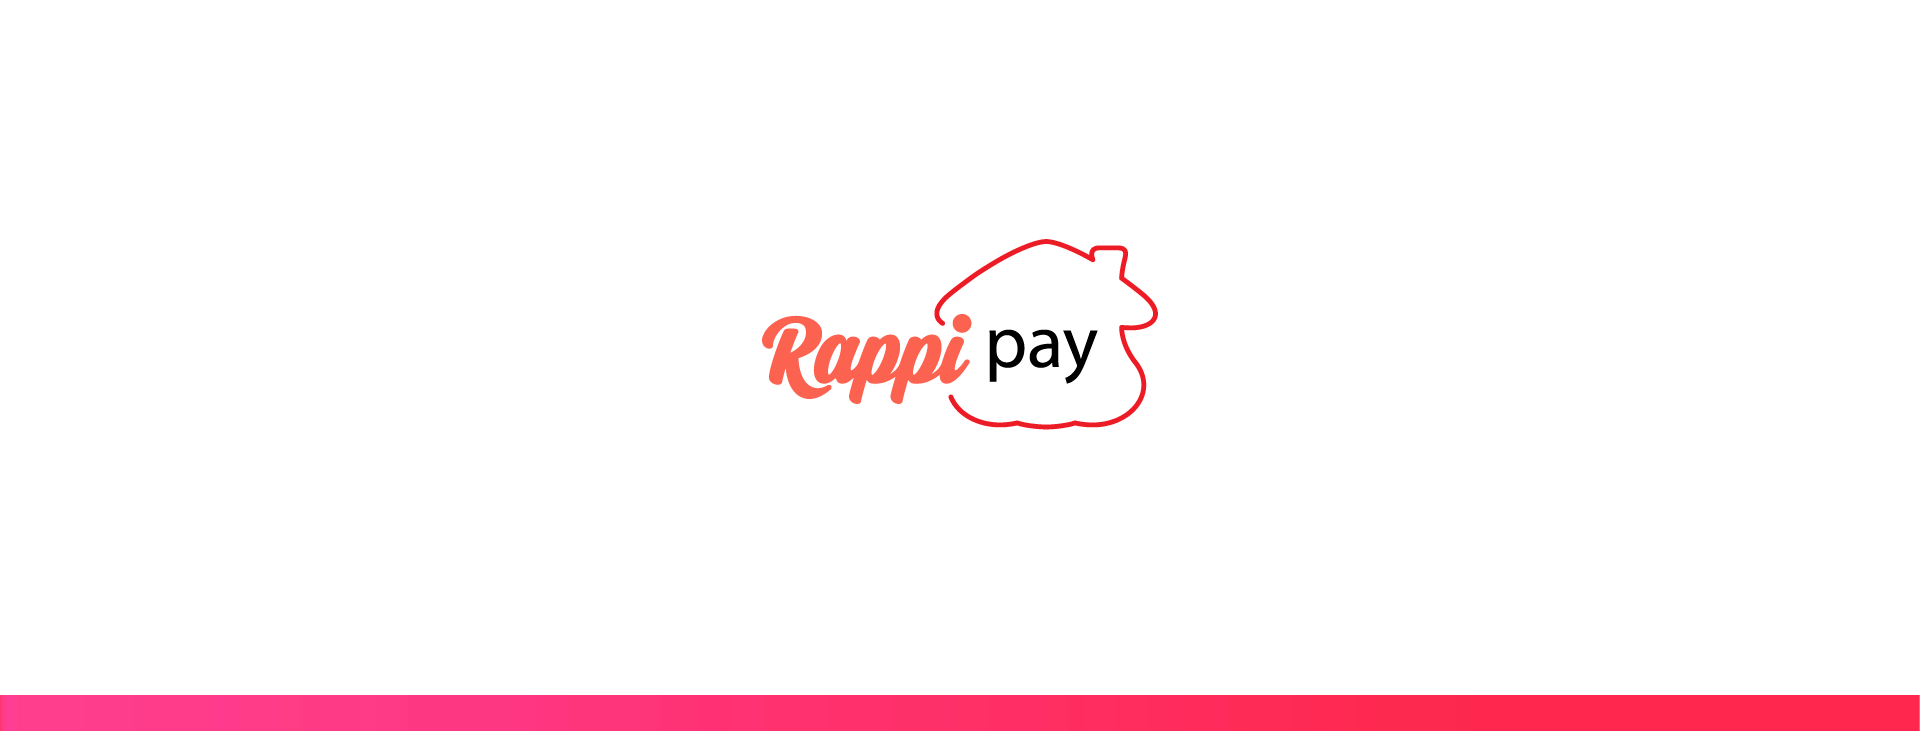 Logo rappi clipart banner free stock Rappi pay on Behance banner free stock